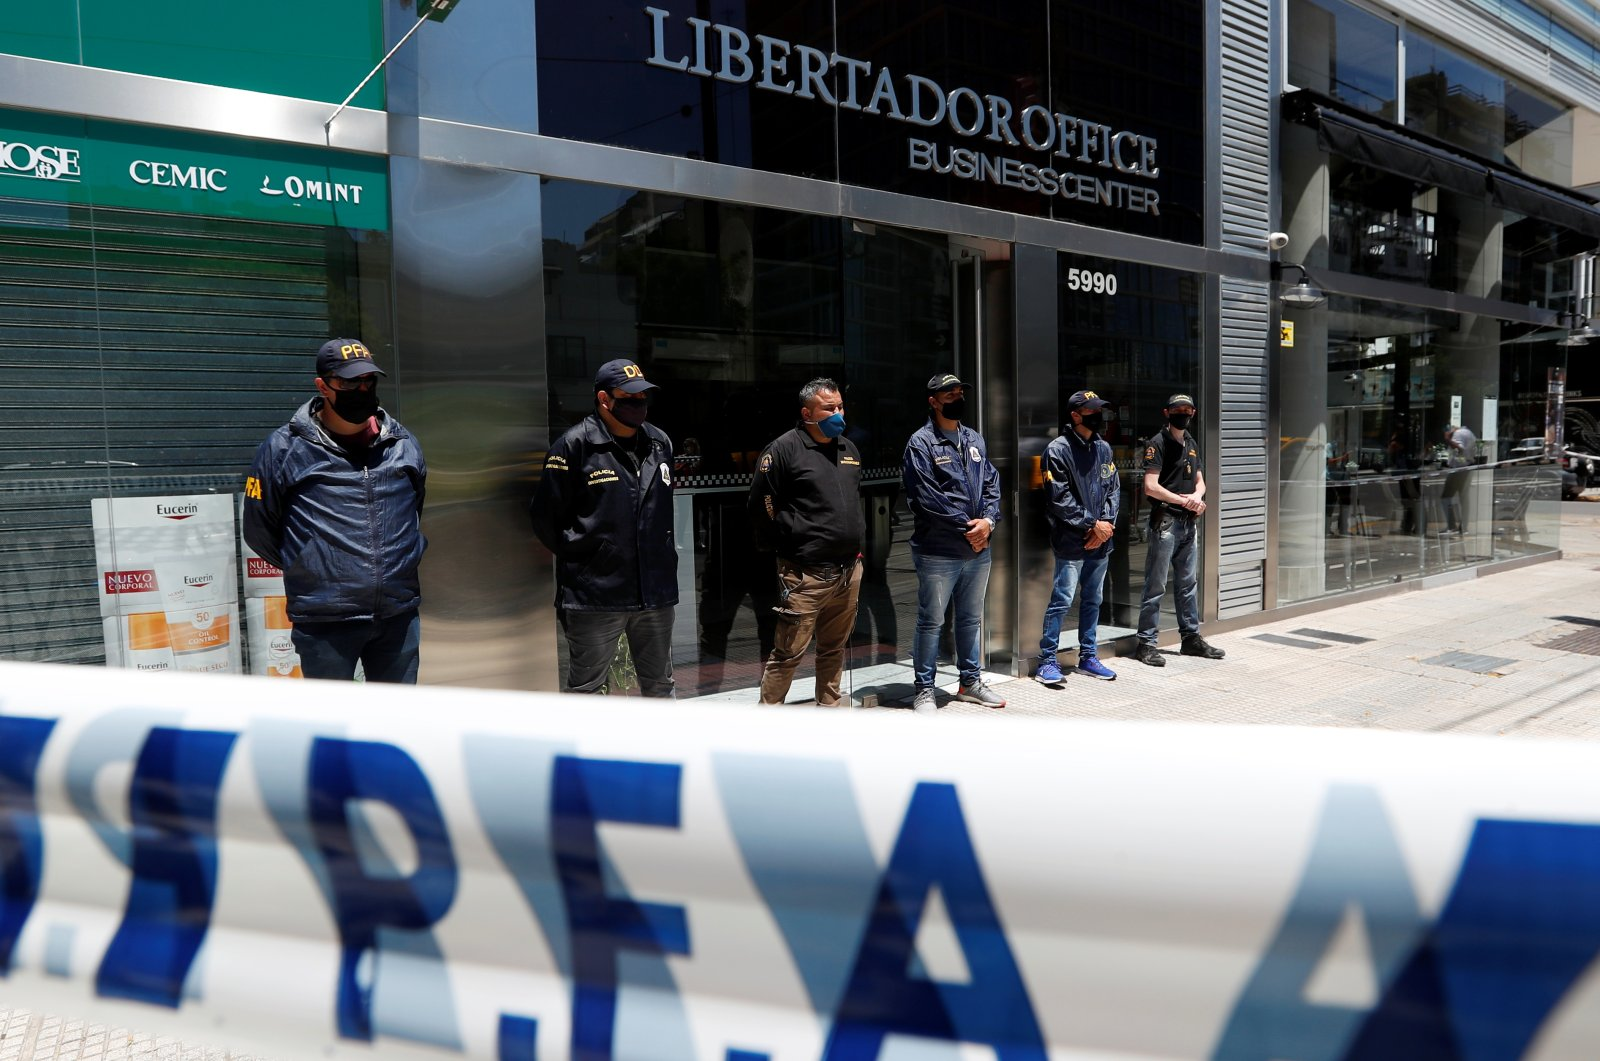 Police officers stand guard outside the building where Leopoldo Luque, the personal doctor of late Argentine soccer legend Diego Armando Maradona, has his office in Buenos Aires, Argentina November 29, 2020. (Reuters Photo)